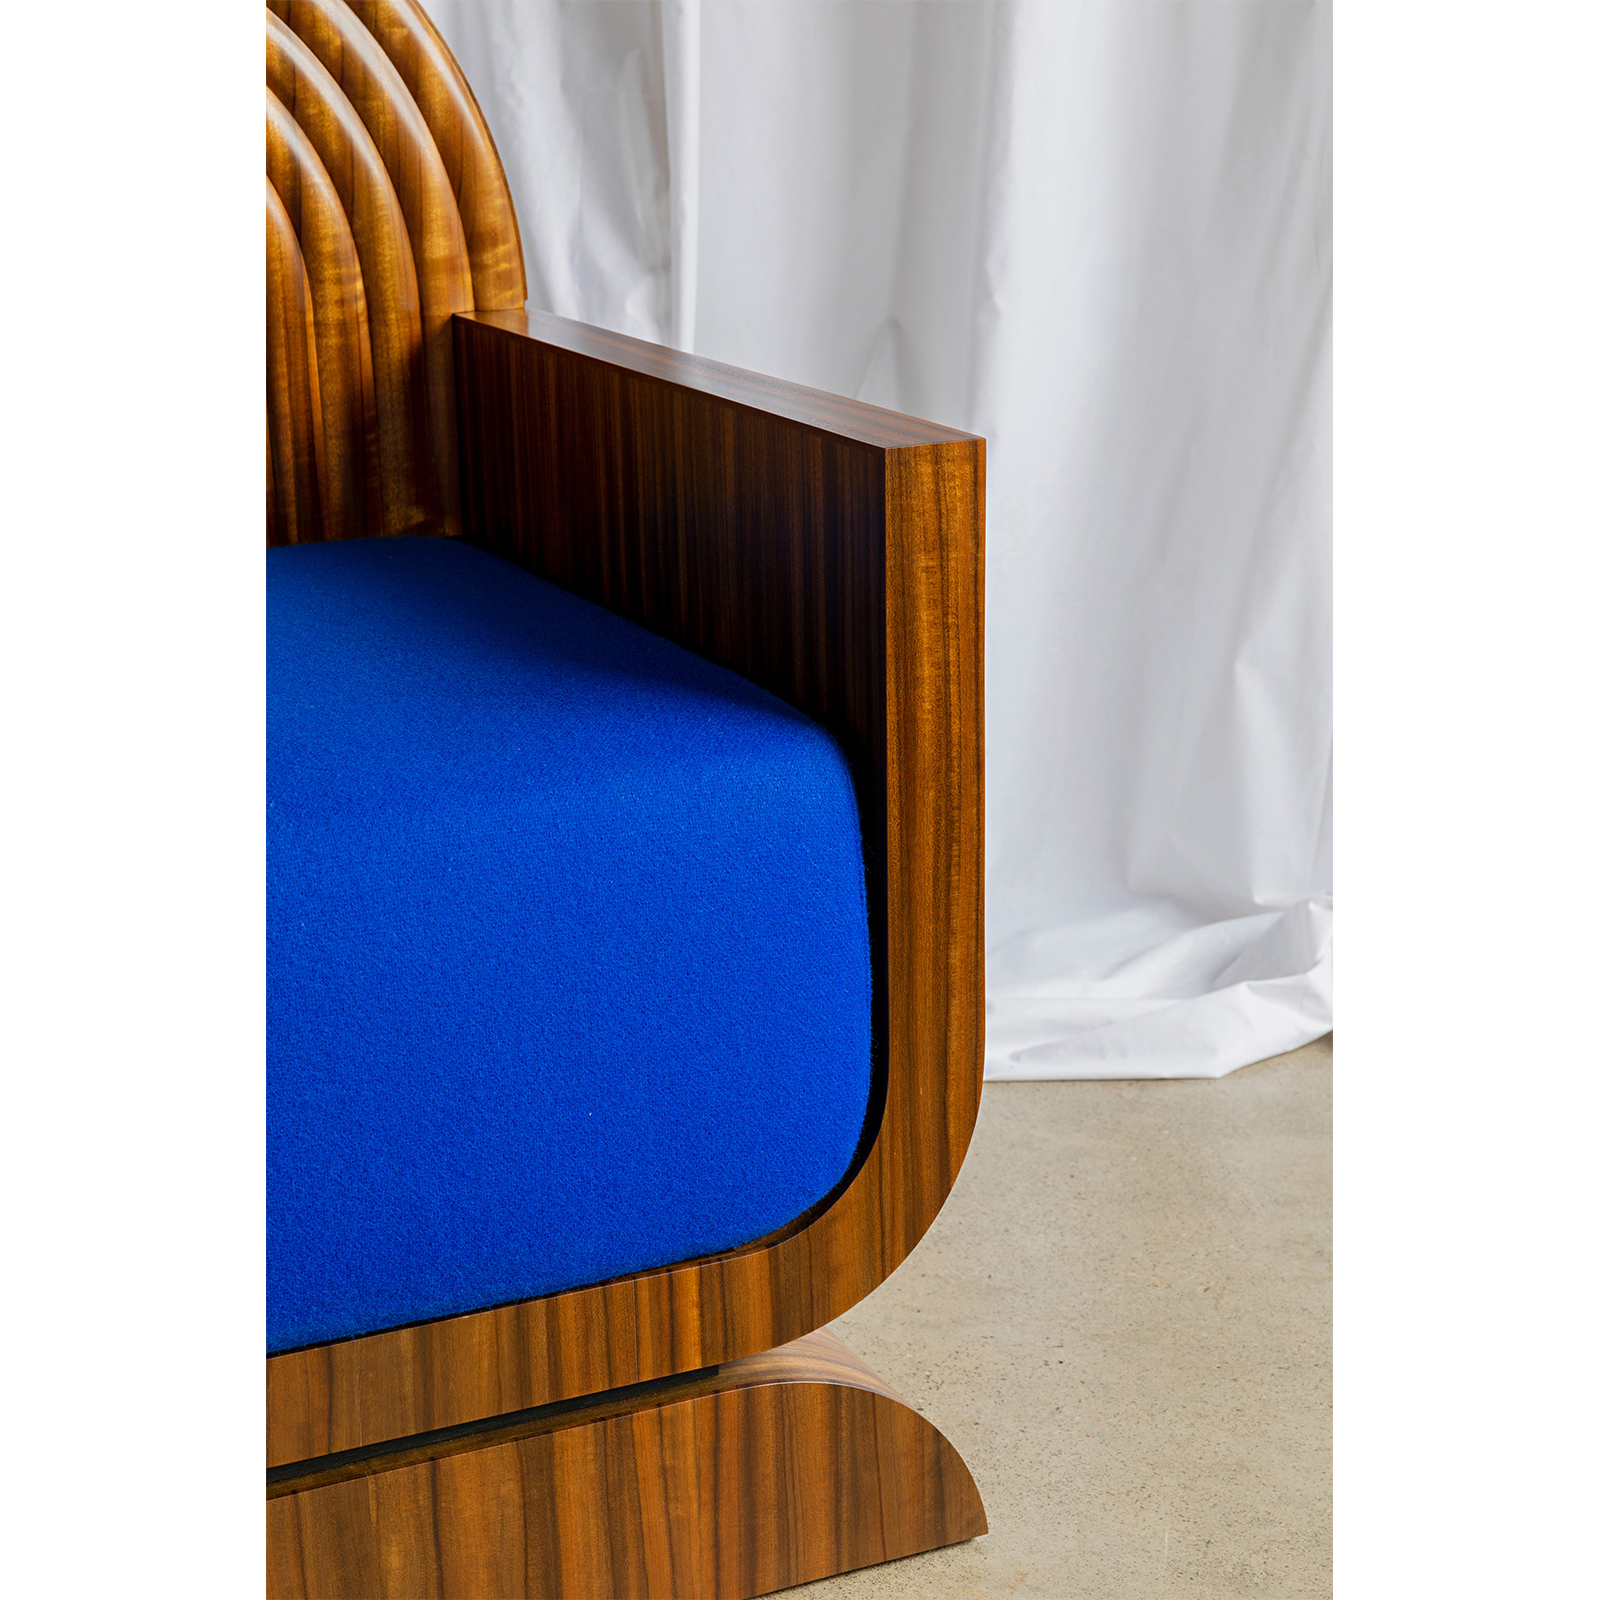 X Chair In Rare Queensland Walnut With Kvadrat Upholstery By Zachary Frankel 4